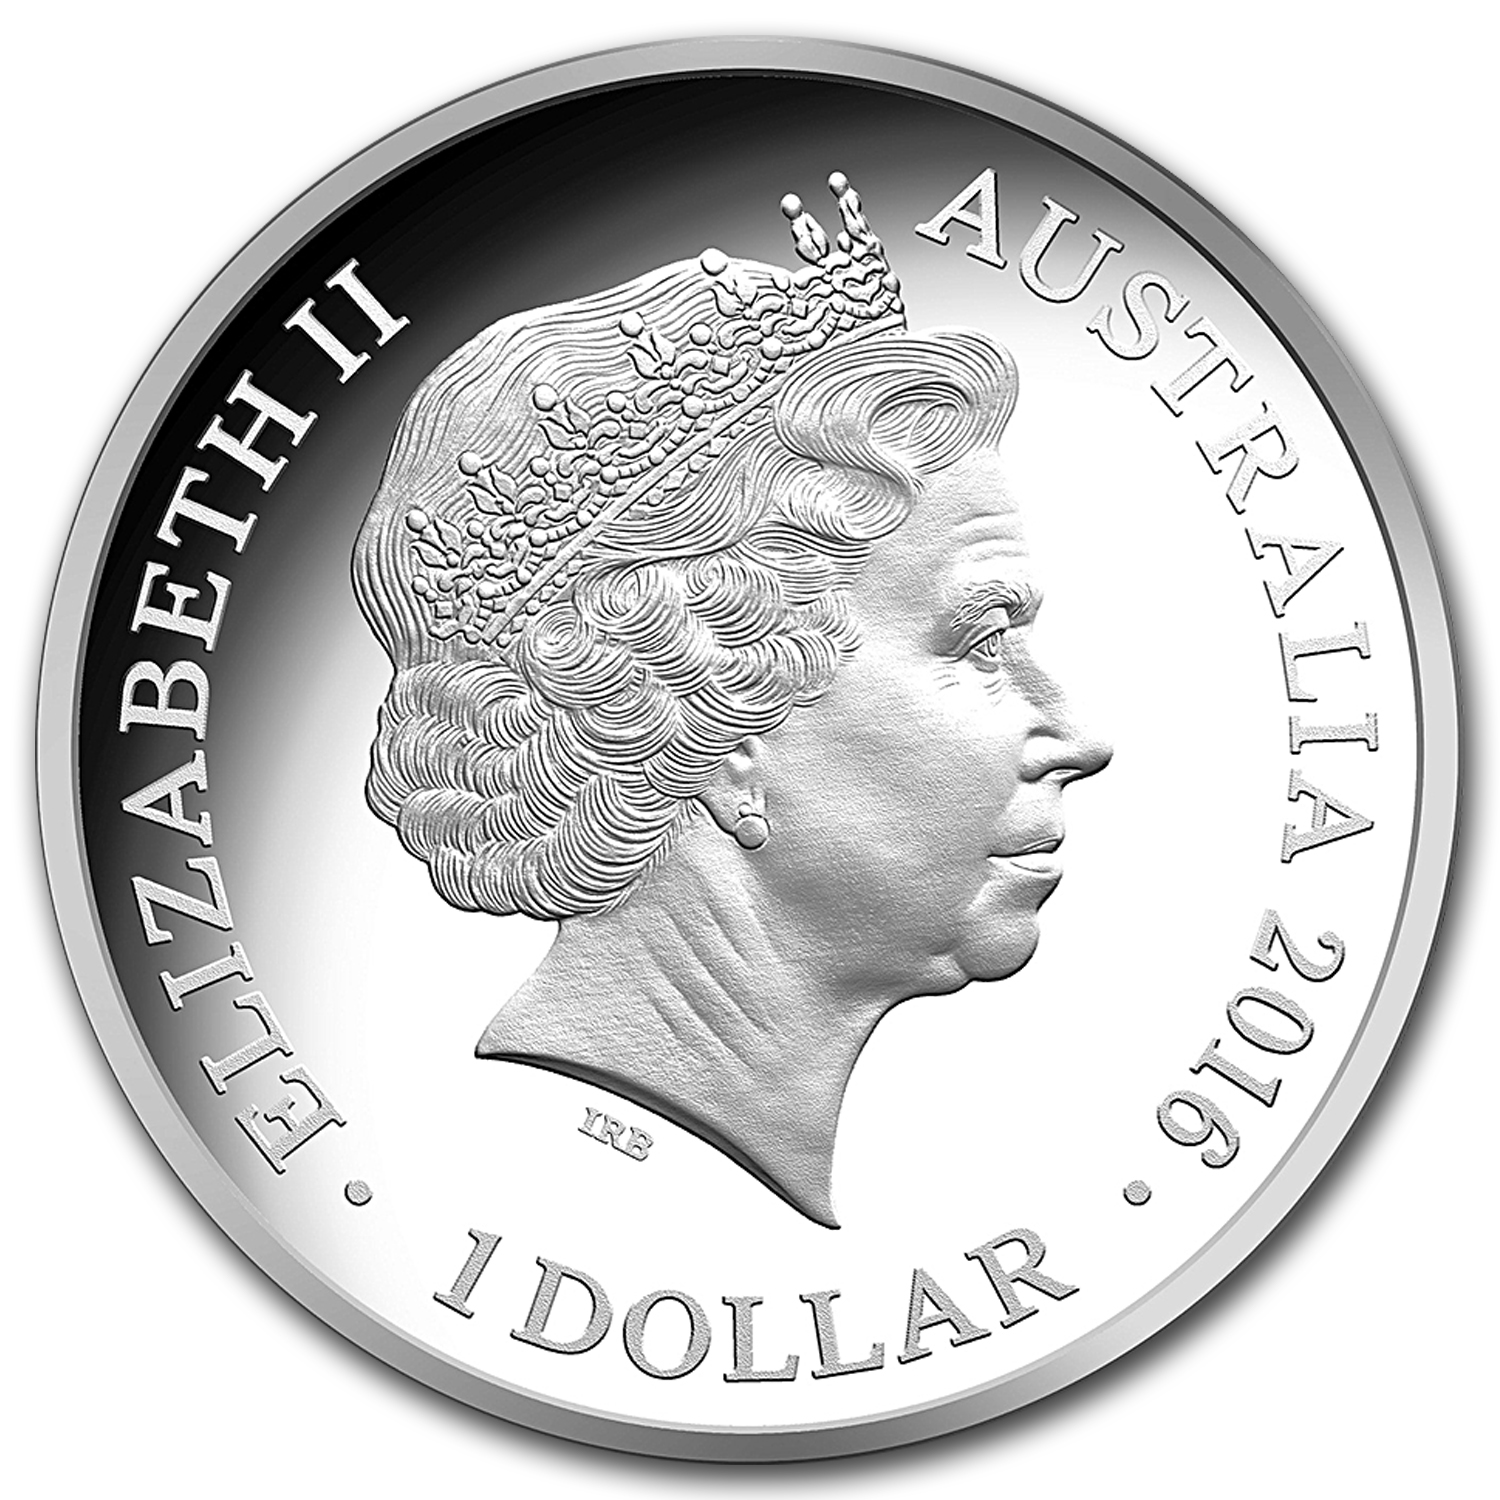 2016 Australia 1 oz Silver Year of the Monkey Proof